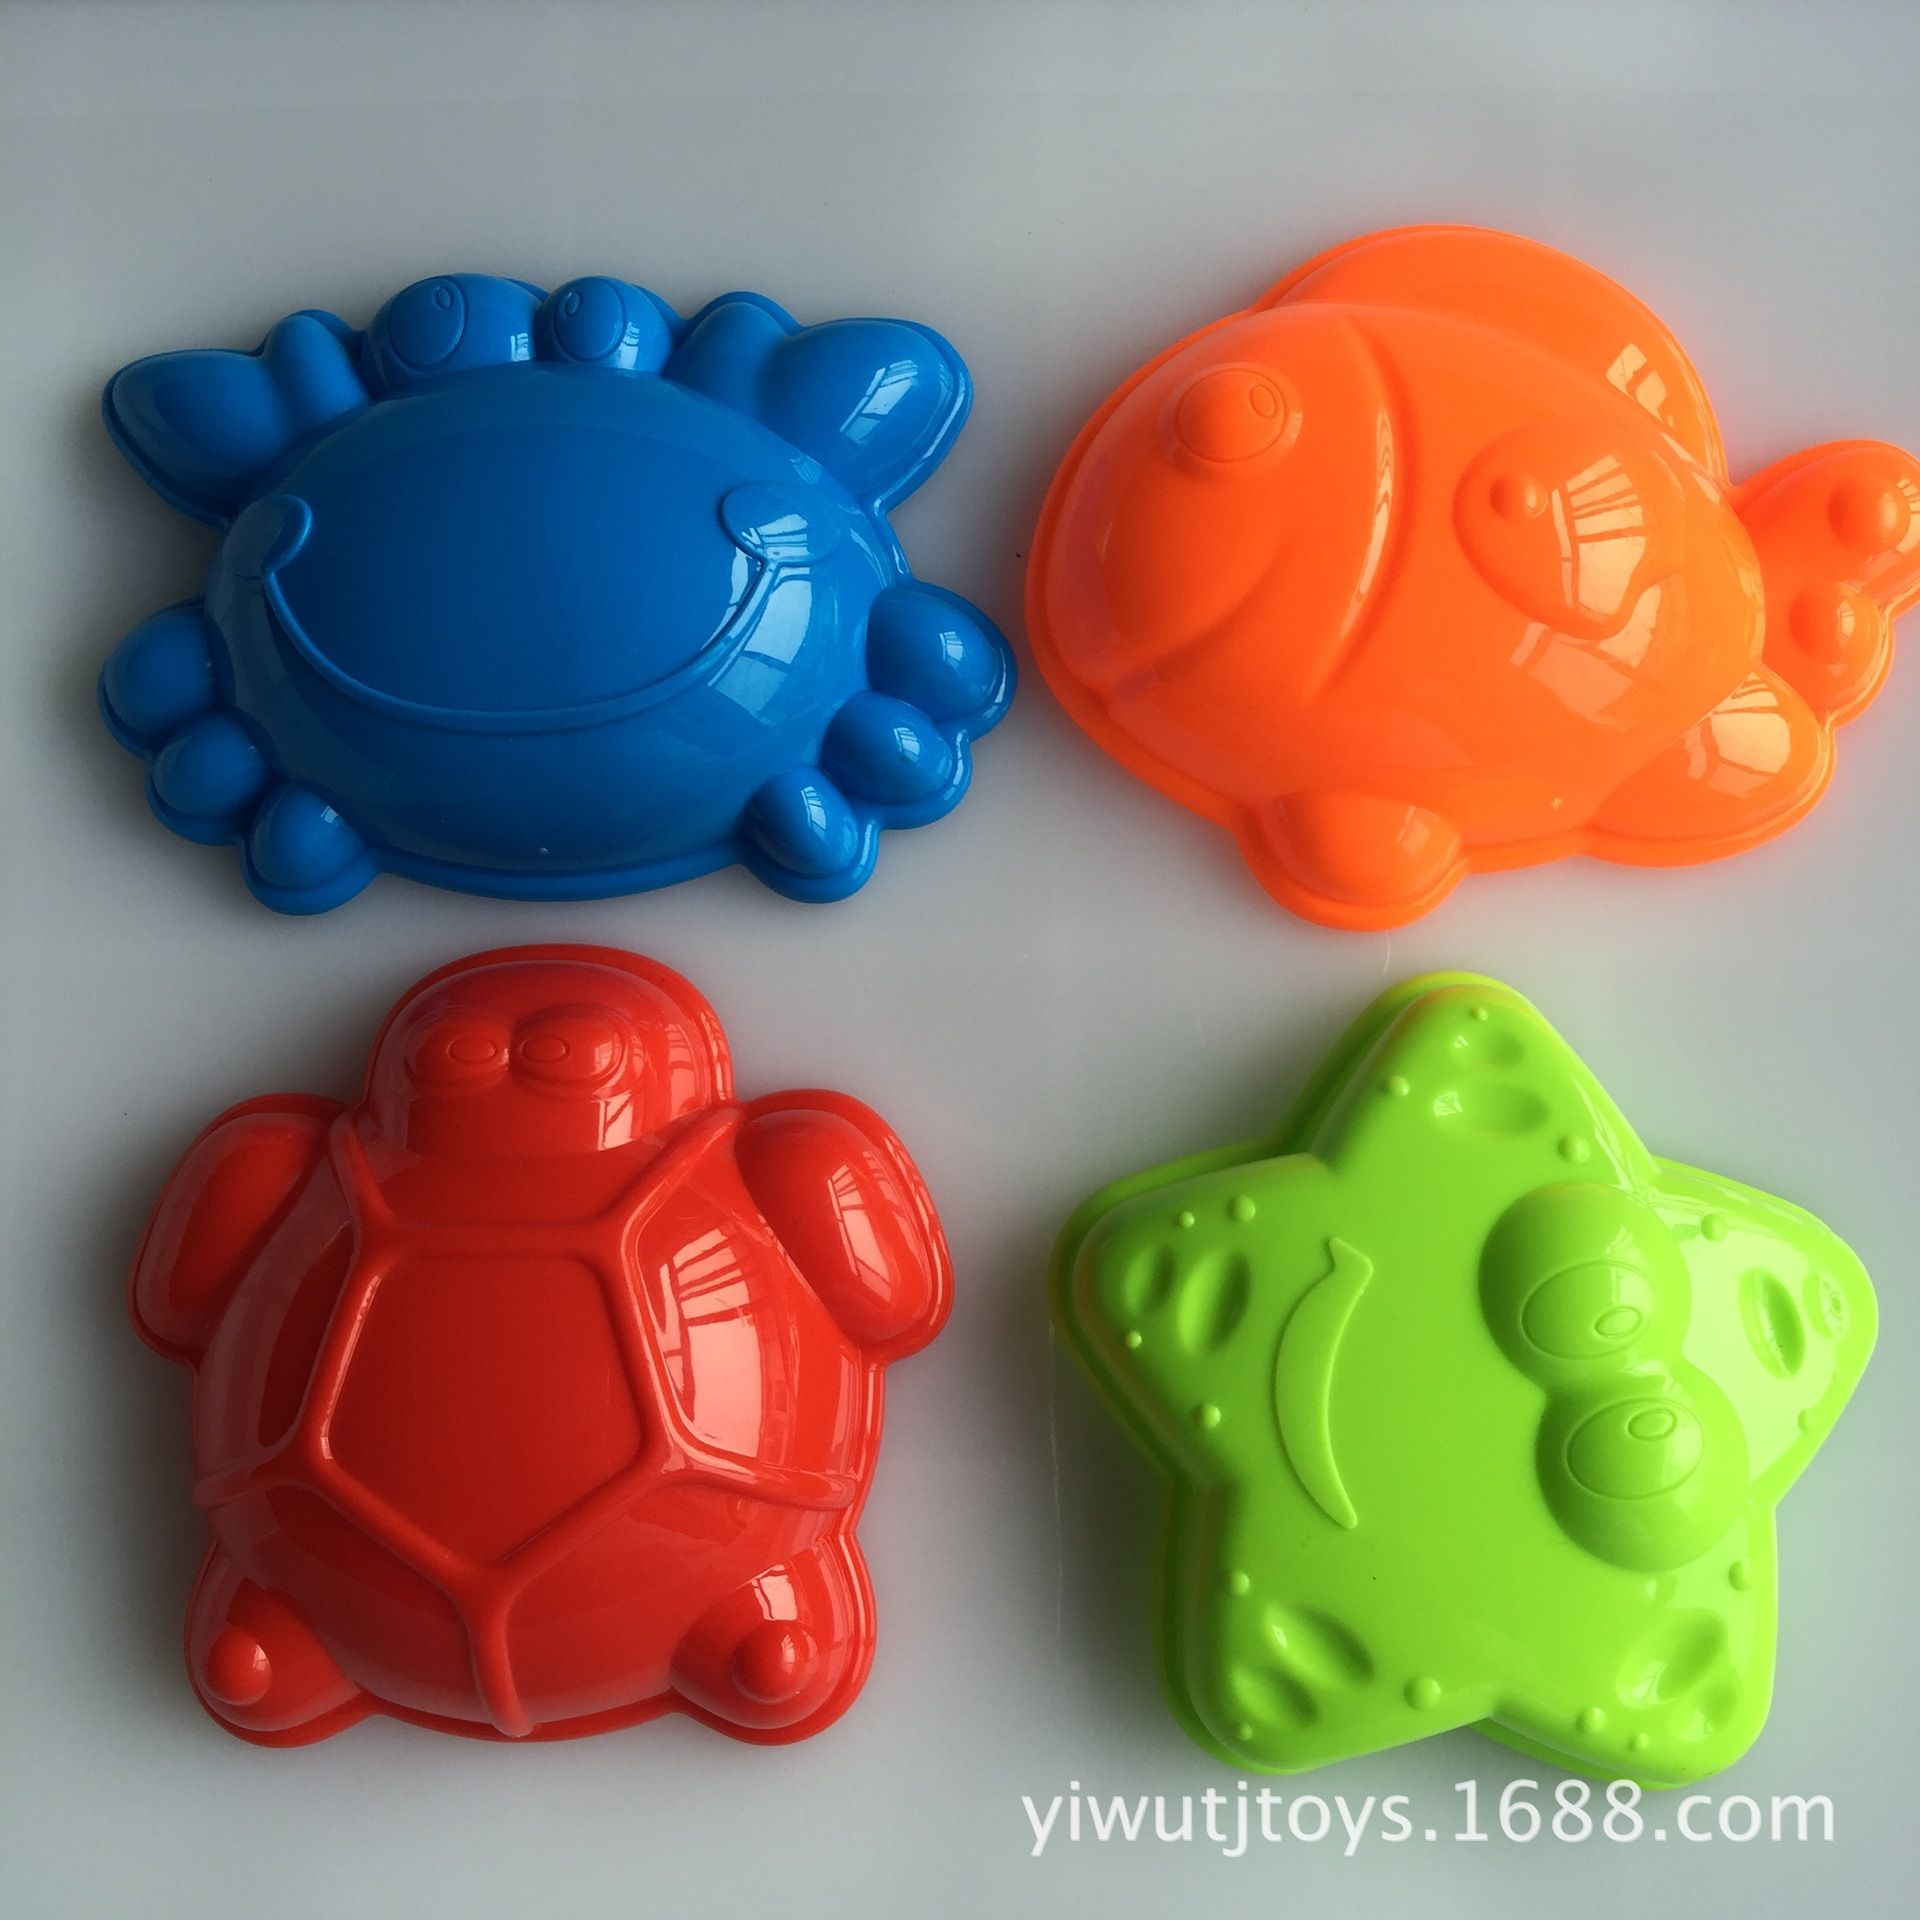 4 Pcs Set Marine Animal Mold Sand Beach Toys Playing Sand Set For Summer Fun